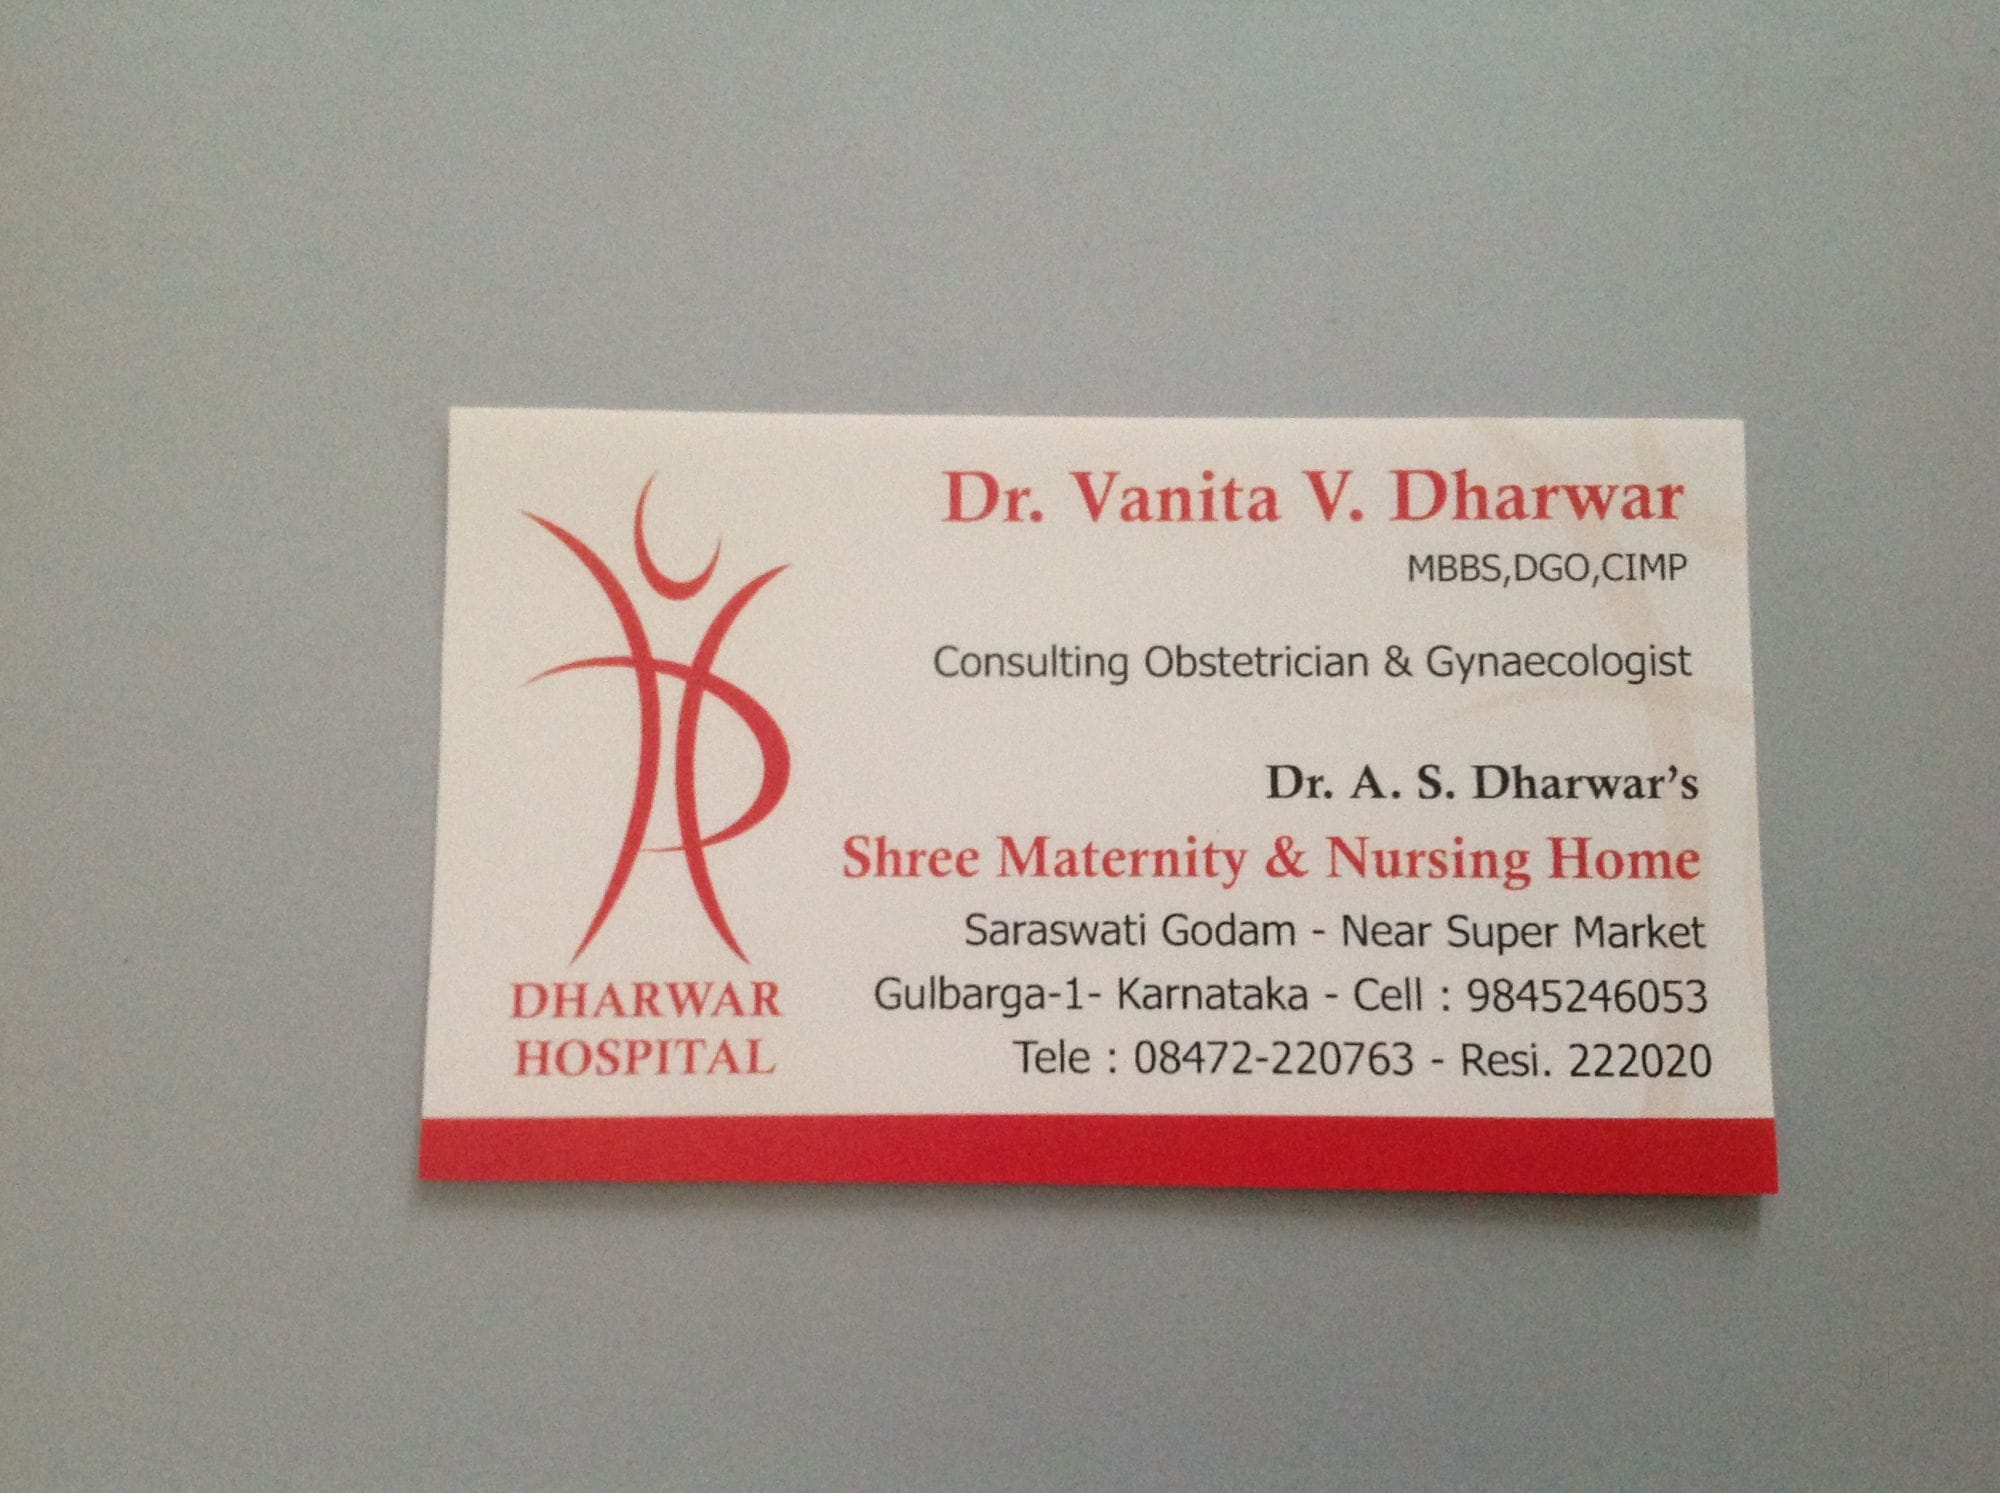 Dr. A S Dharwars Shree Maternity And Nursing Home, Market Road ...